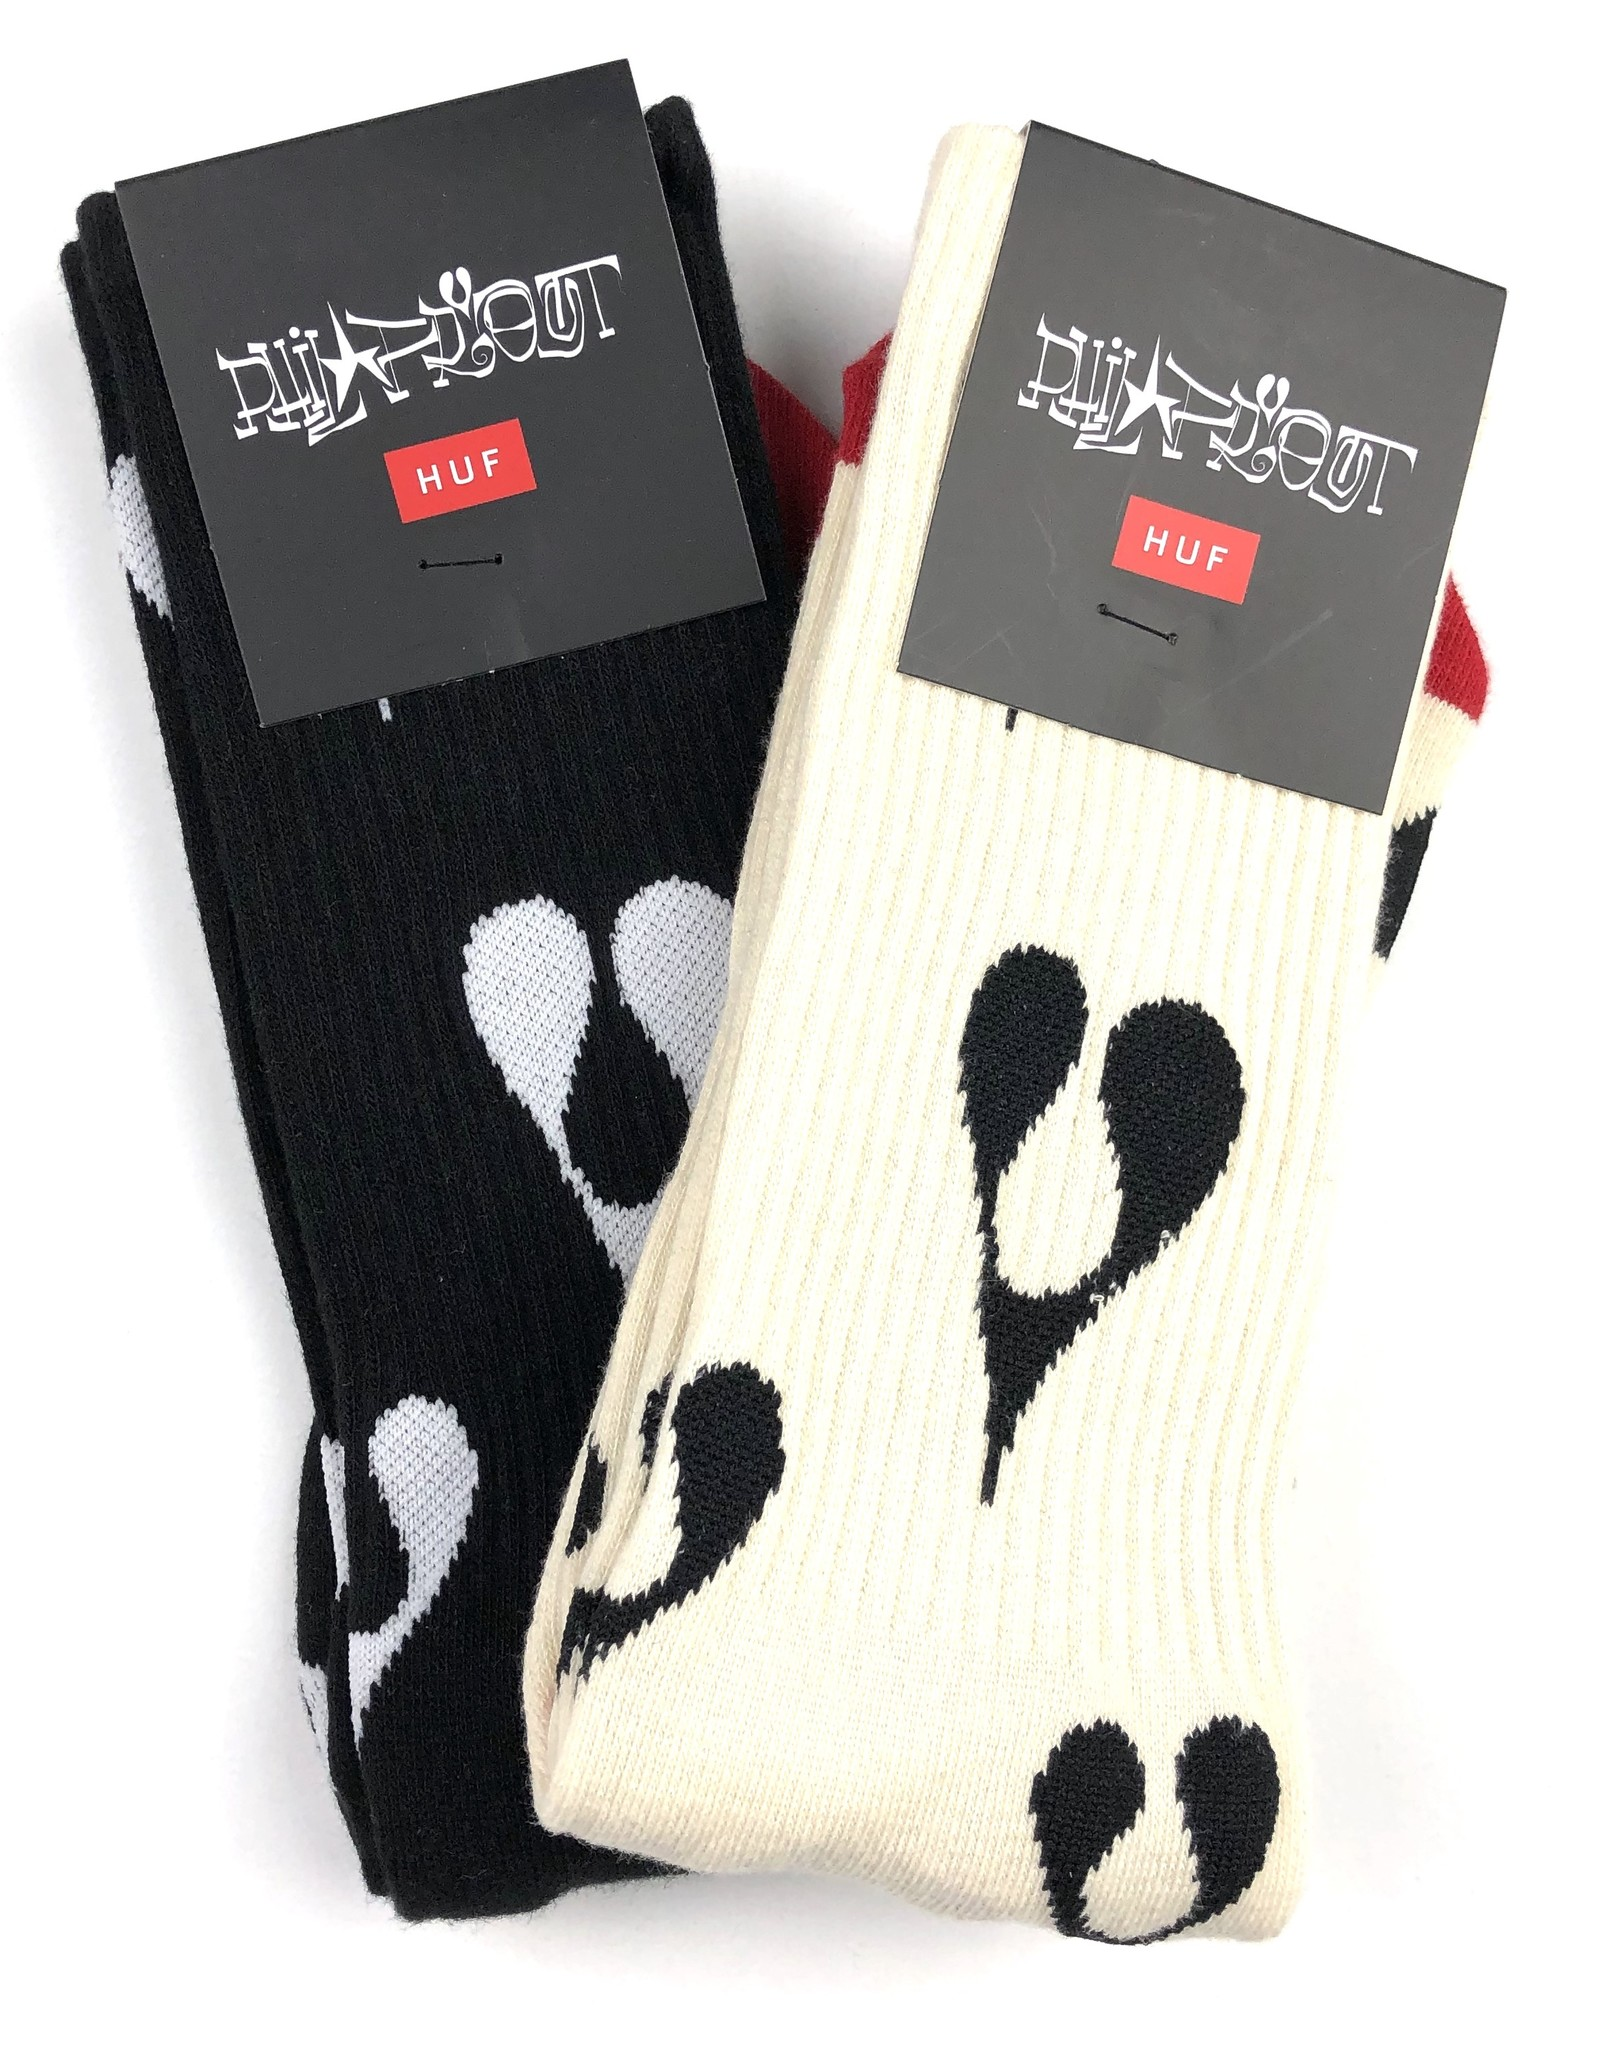 HUF PHIL FROST SOCKS - (ALL COLORS)